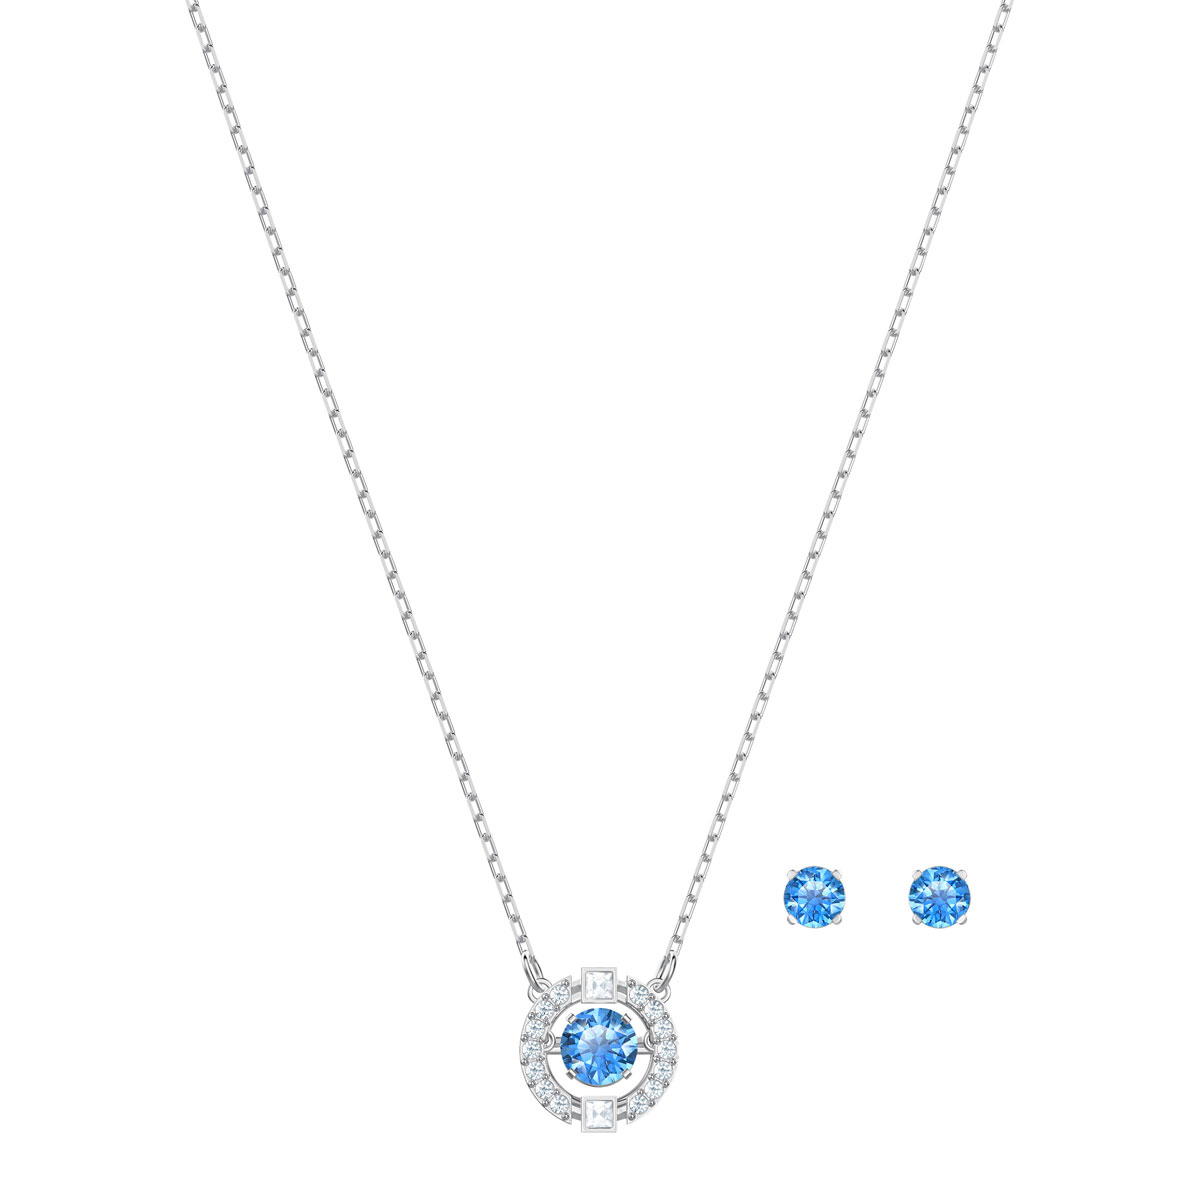 Swarovski Sparkling Necklace and Earrings Dance Round Set, Blue, Rhodium